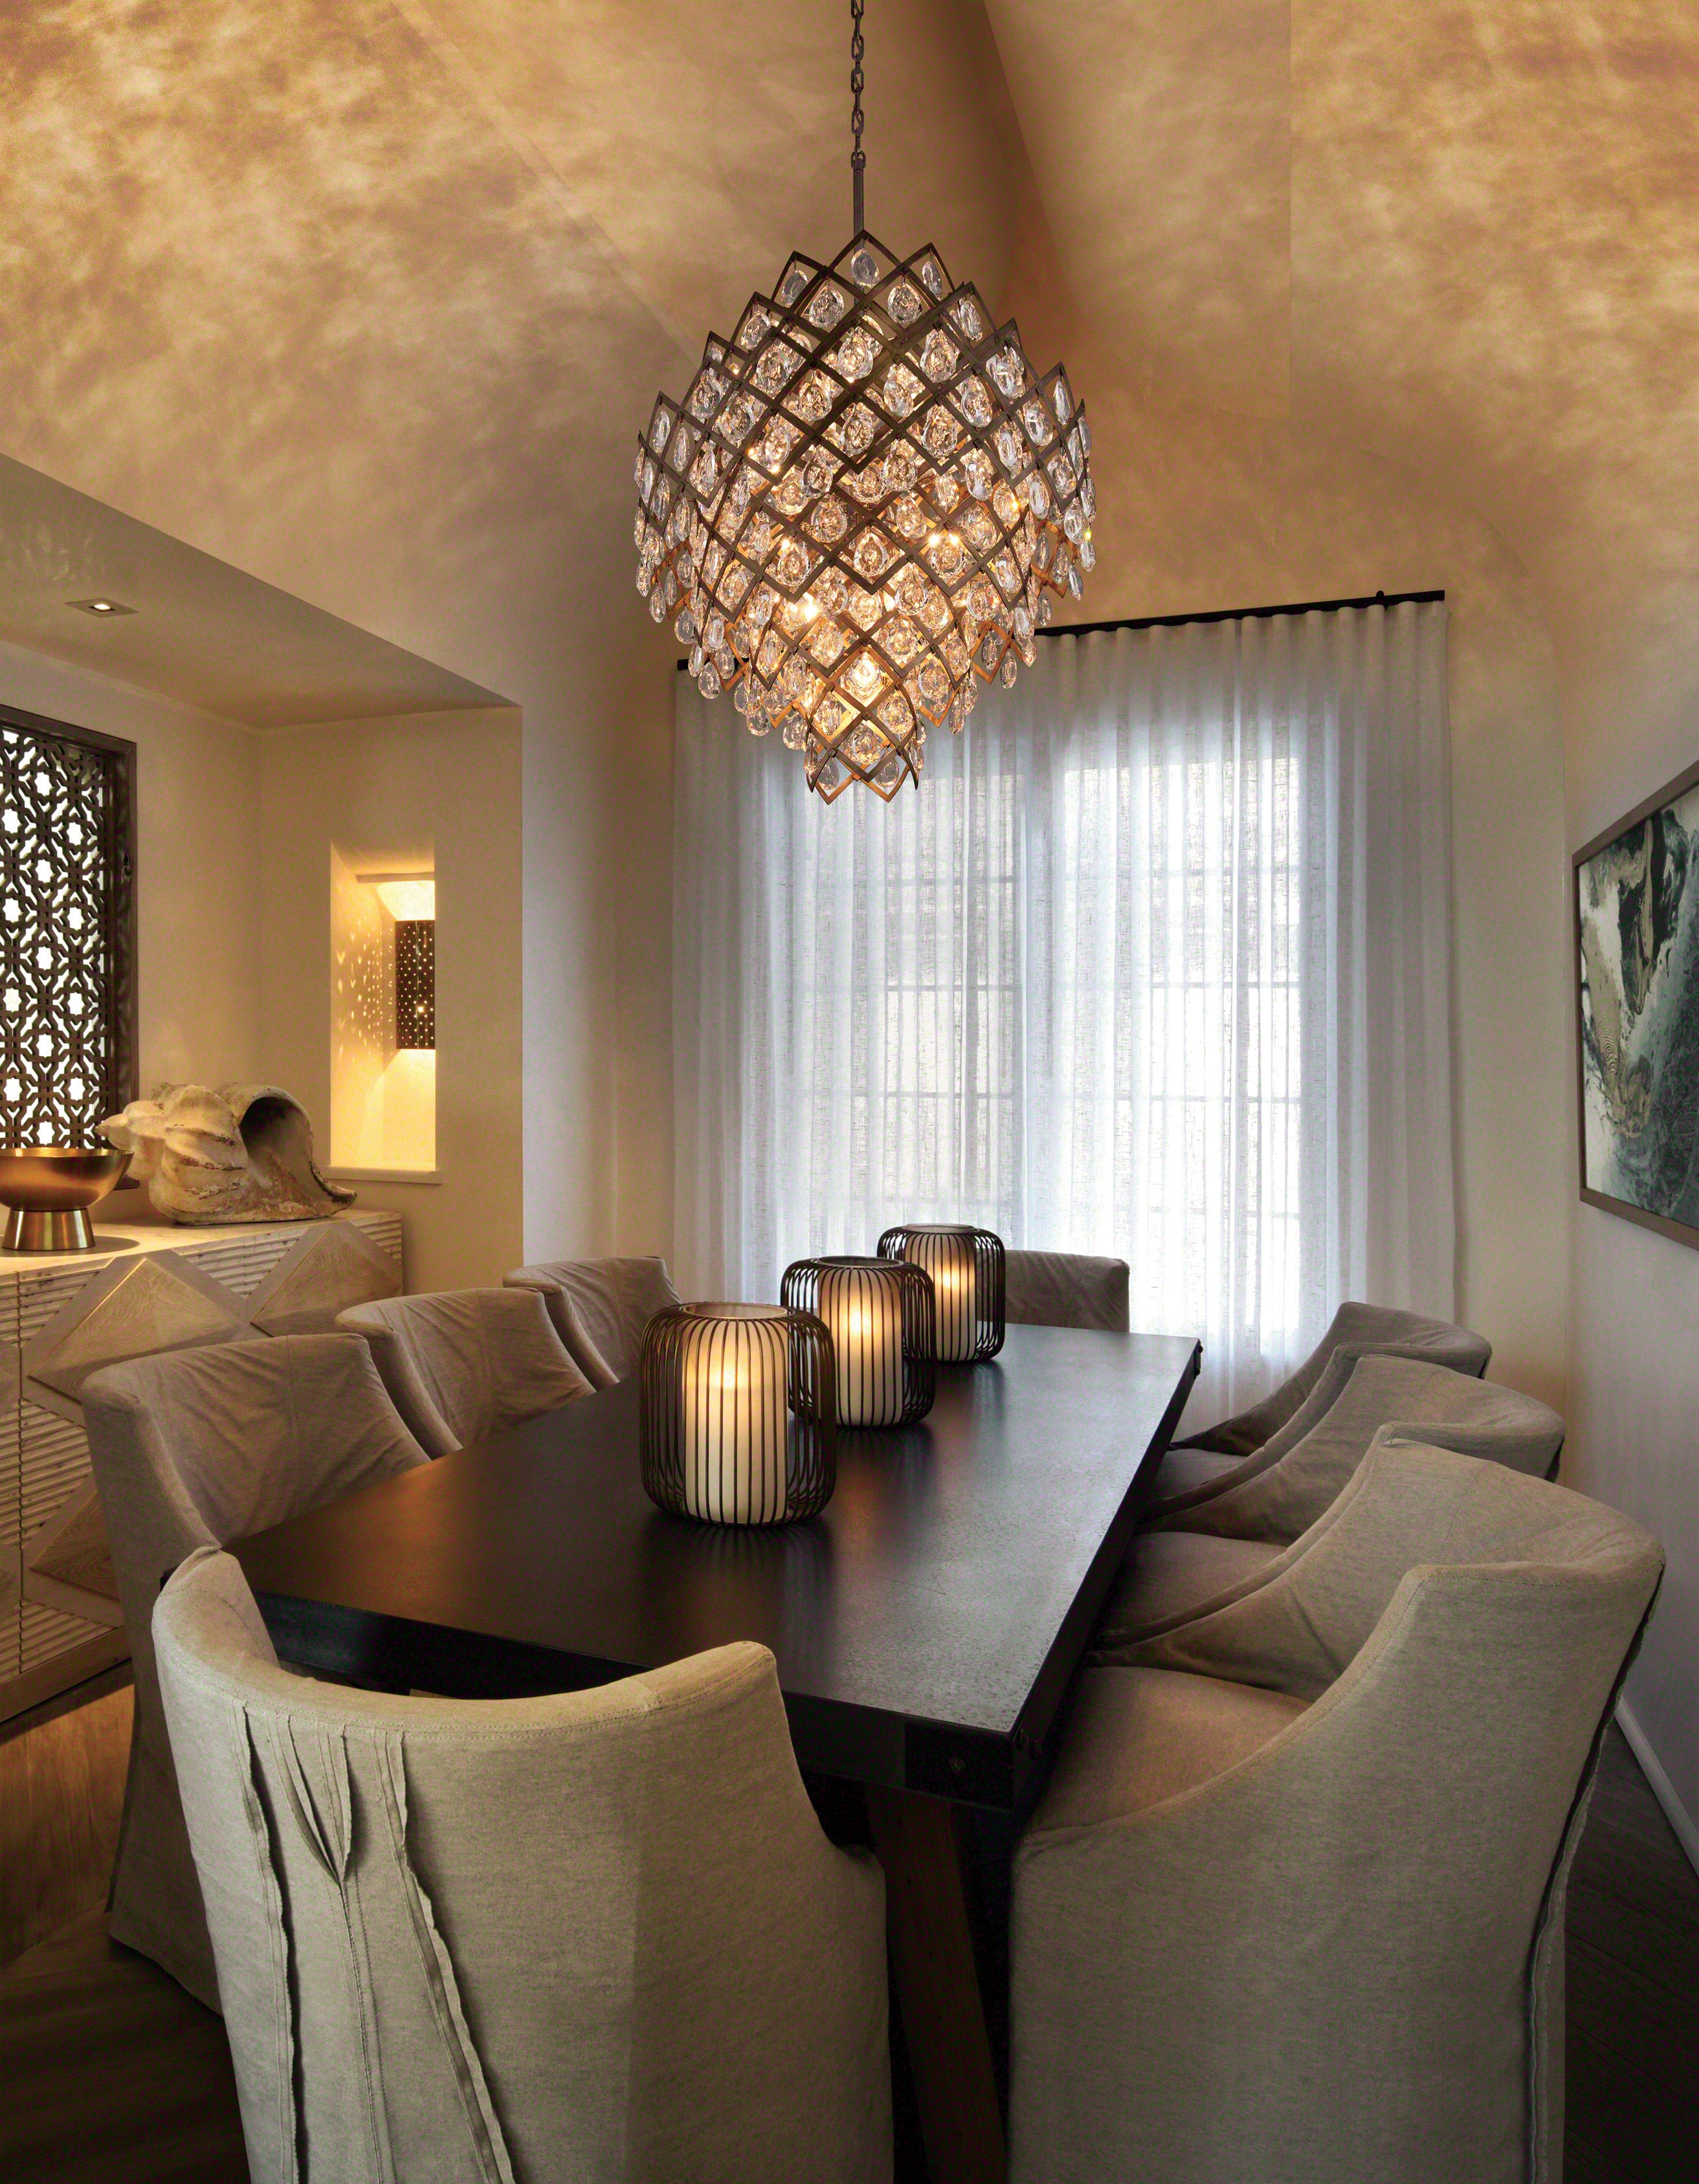 Tiara by Corbett Lighting. Fit for royalty. #interiordesign #chandelier & Tiara by Corbett Lighting. Fit for royalty. #interiordesign ...